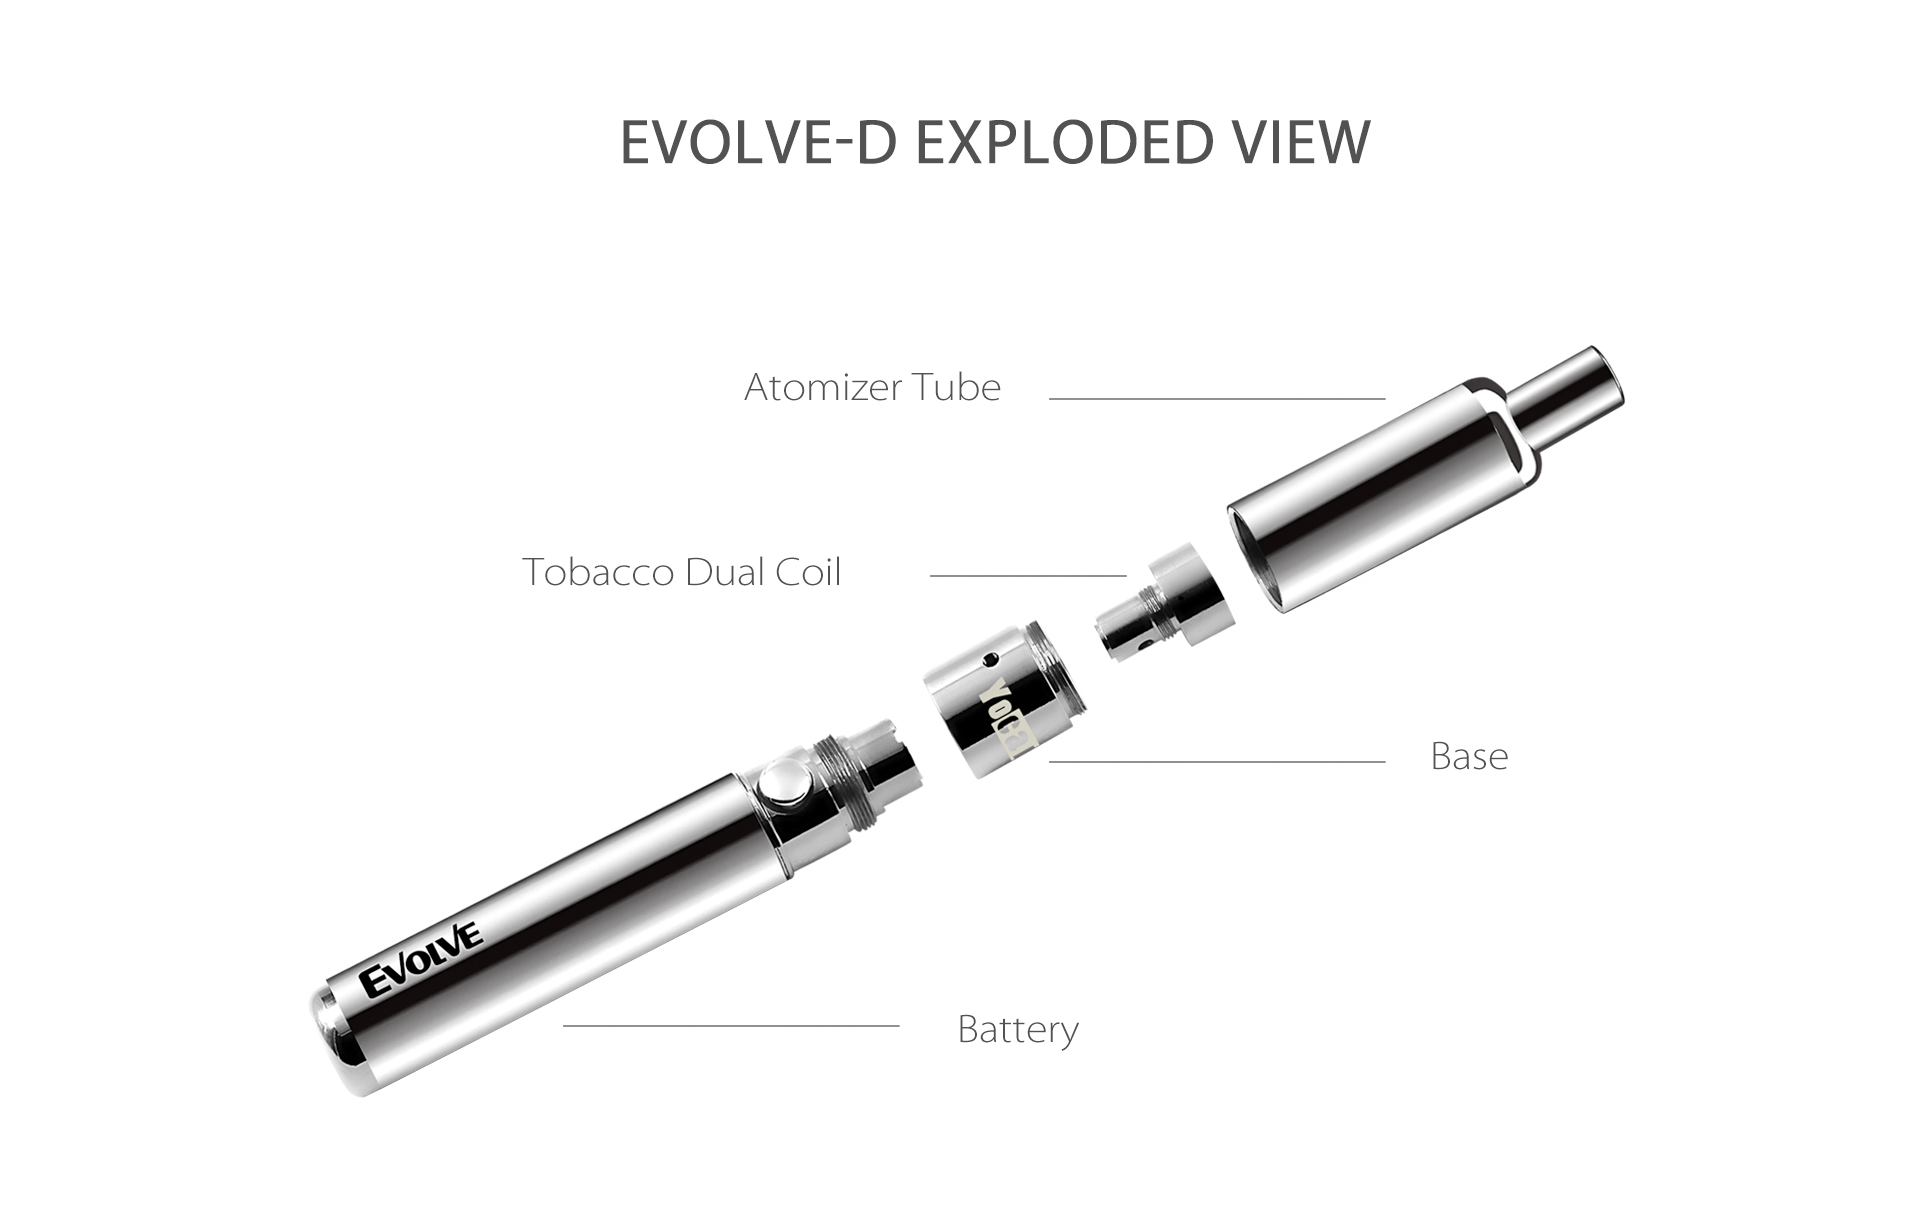 Yocan Evolve-D vaporizer pen 2020 version exploded view.